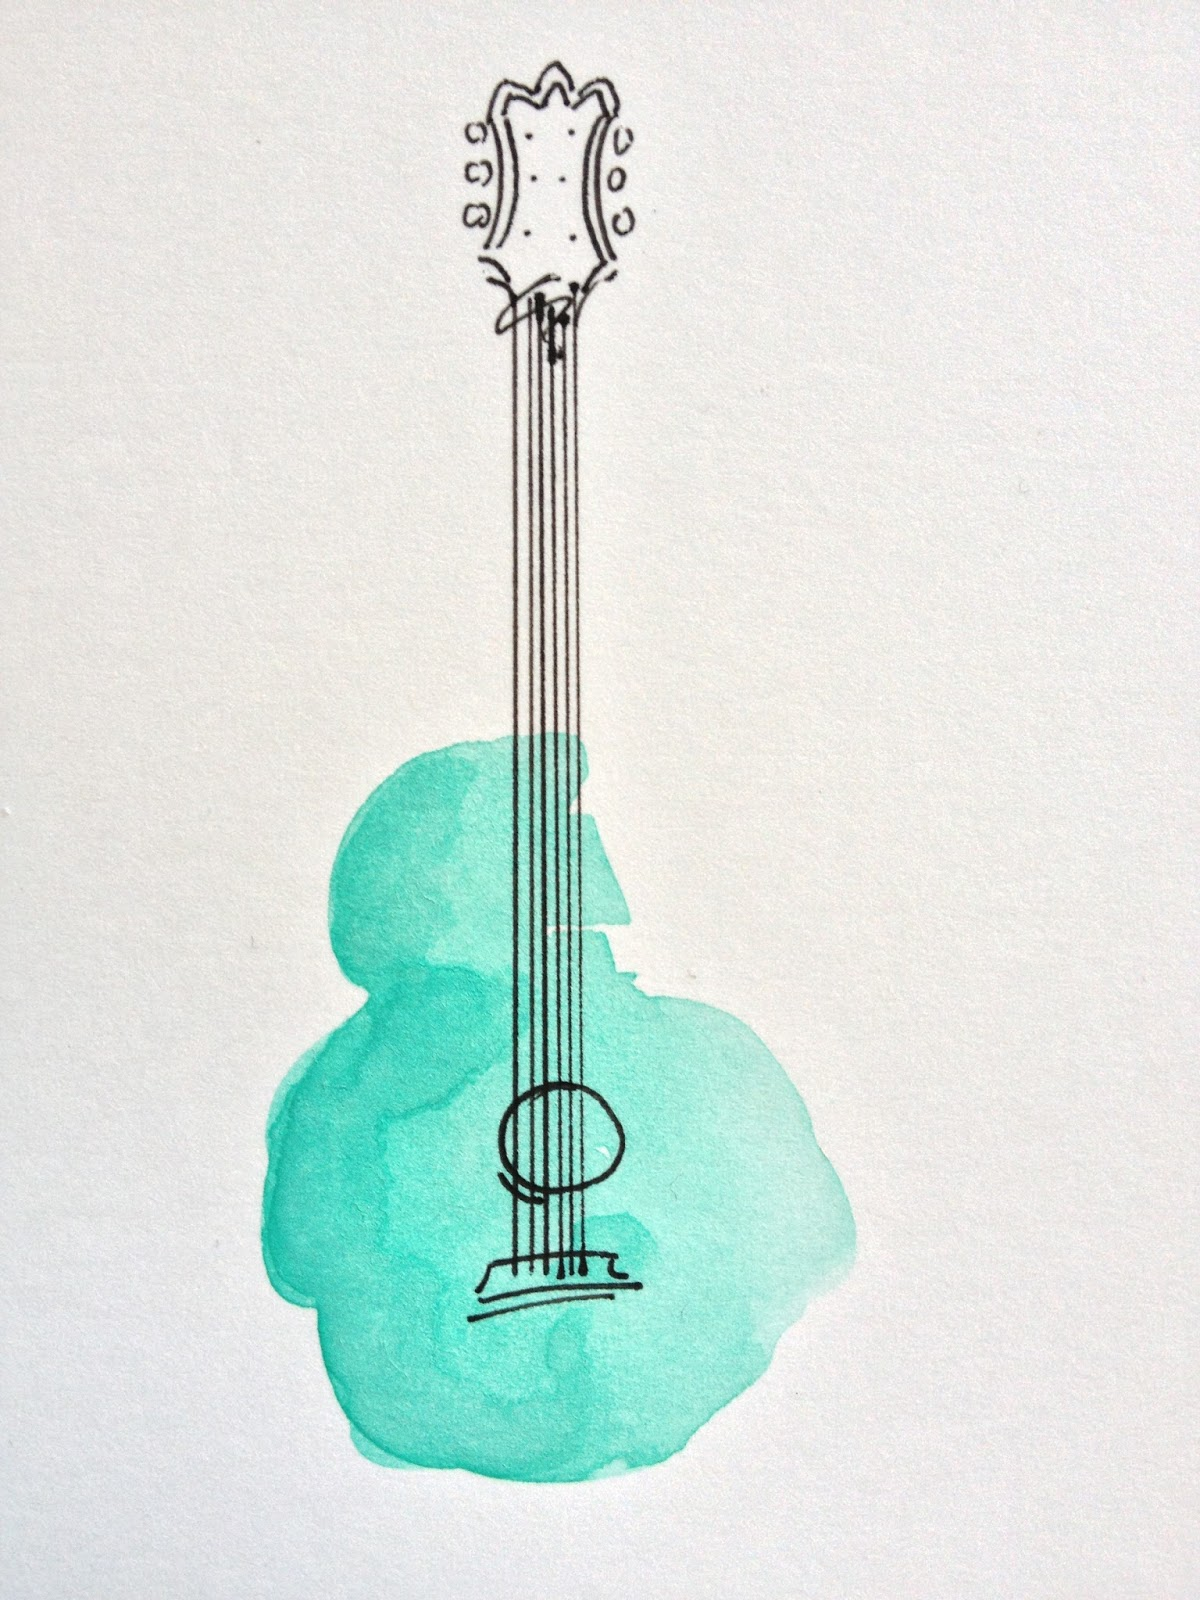 guitar drawing easy step by step how to draw cats easy how to draw